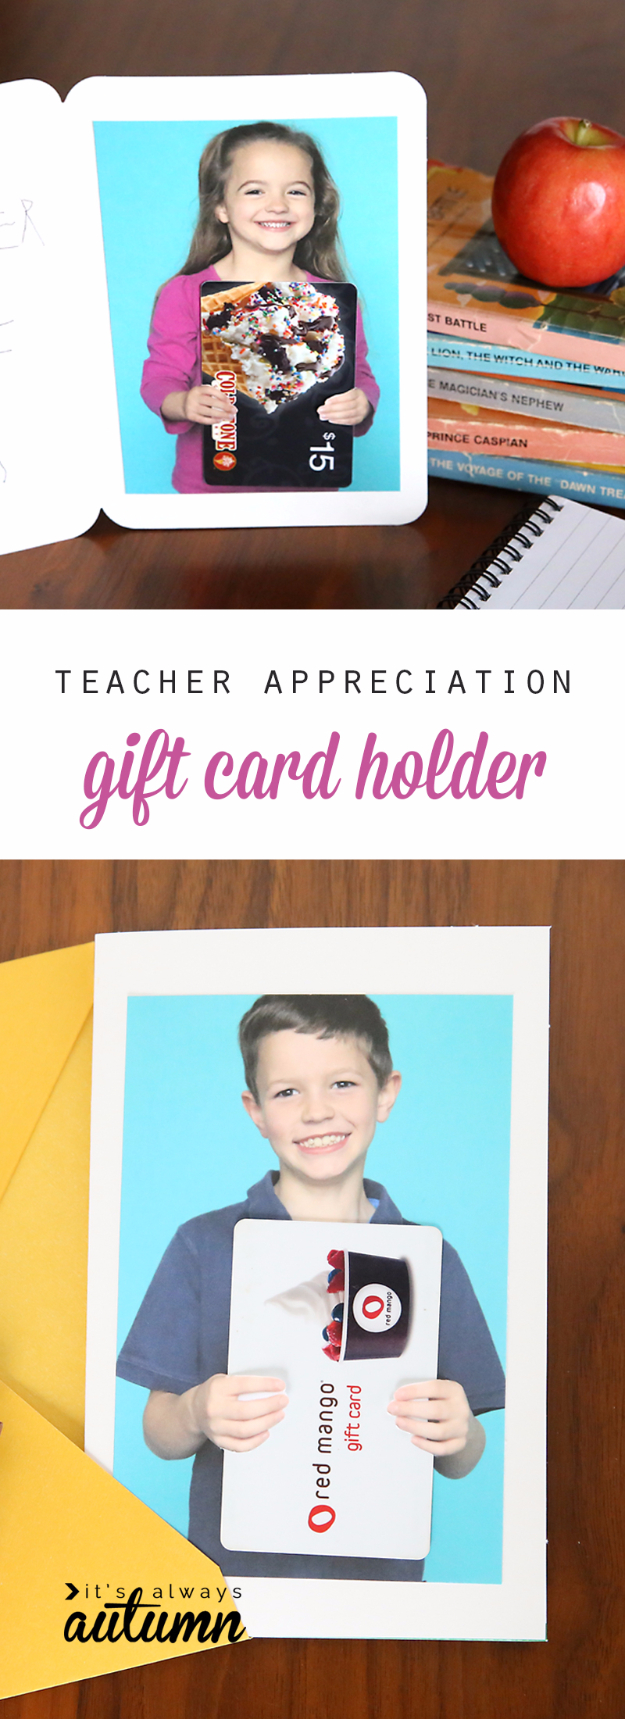 DIY Teacher Gifts - Photo Gift Card Holder - Cheap and Easy Presents and DIY Gift Ideas for Teachers at Christmas, End of Year, First Day and Birthday - Teacher Appreciation Gifts and Crafts - Cute Mason Jar Ideas and Thoughtful, Unique Gifts from Kids #diygifts #teachersgifts #diyideas #cheapgifts